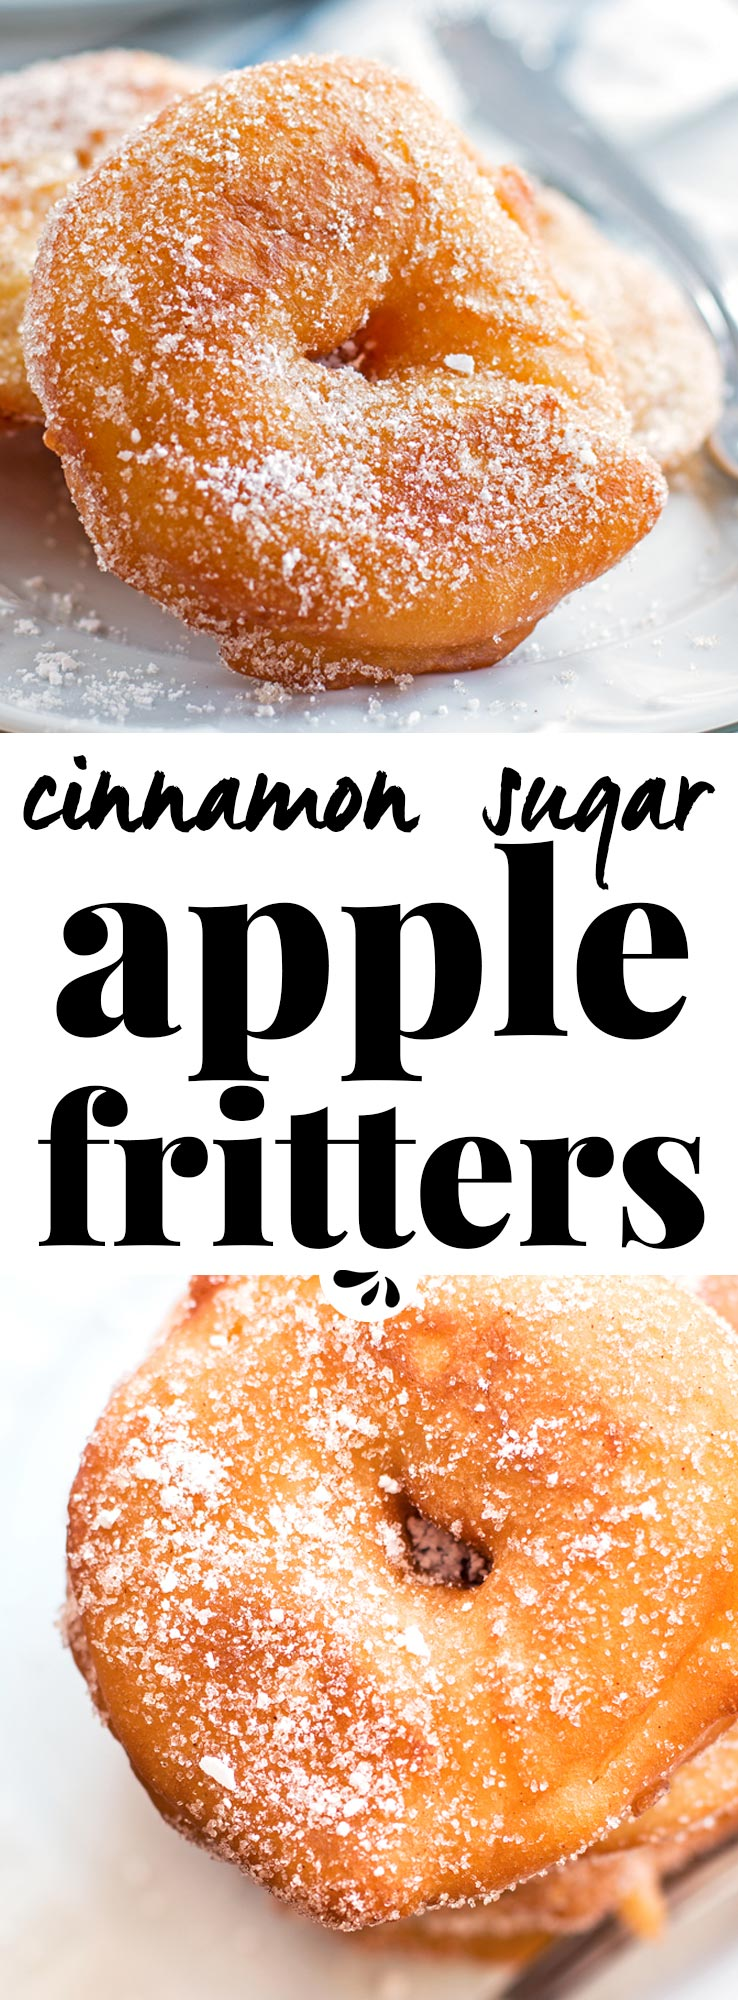 Are you looking for an easy apple fritter recipe? These are SO good! They look like fried apple donuts – the homemade batter turns